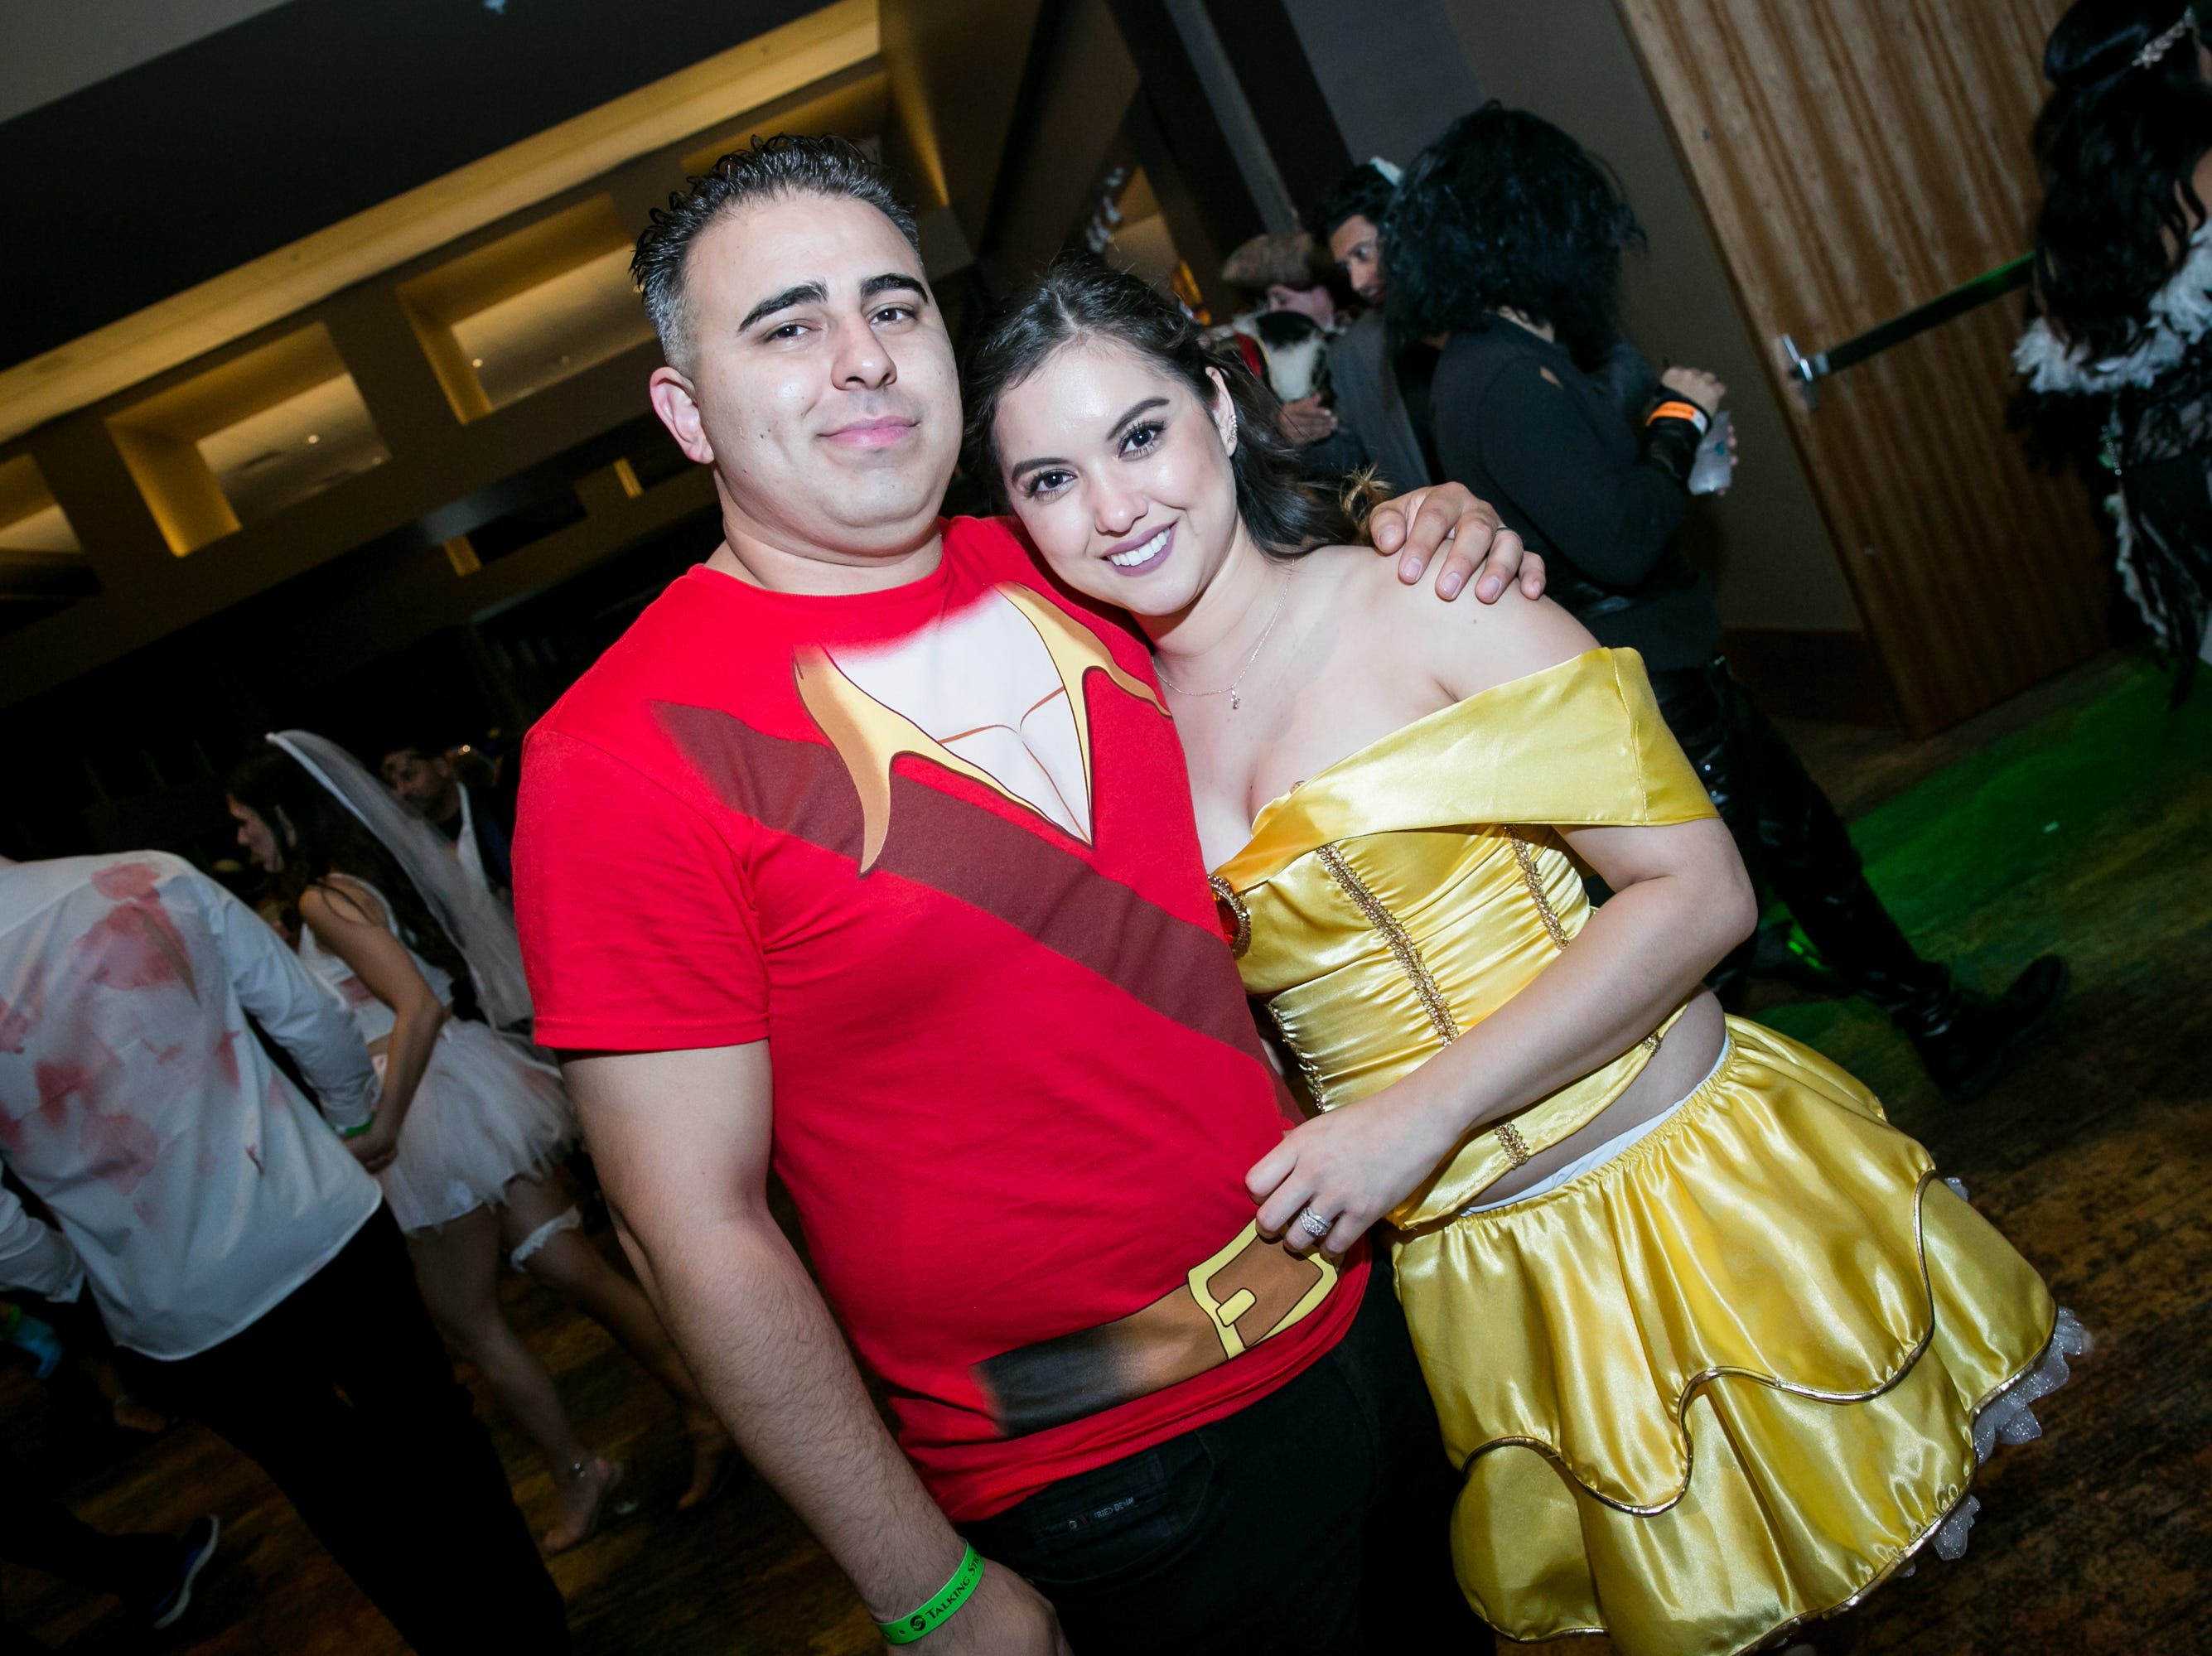 Belle chose Gaston after all during Wicked Ball at Talking Stick Resort on Saturday, October 27, 2018.